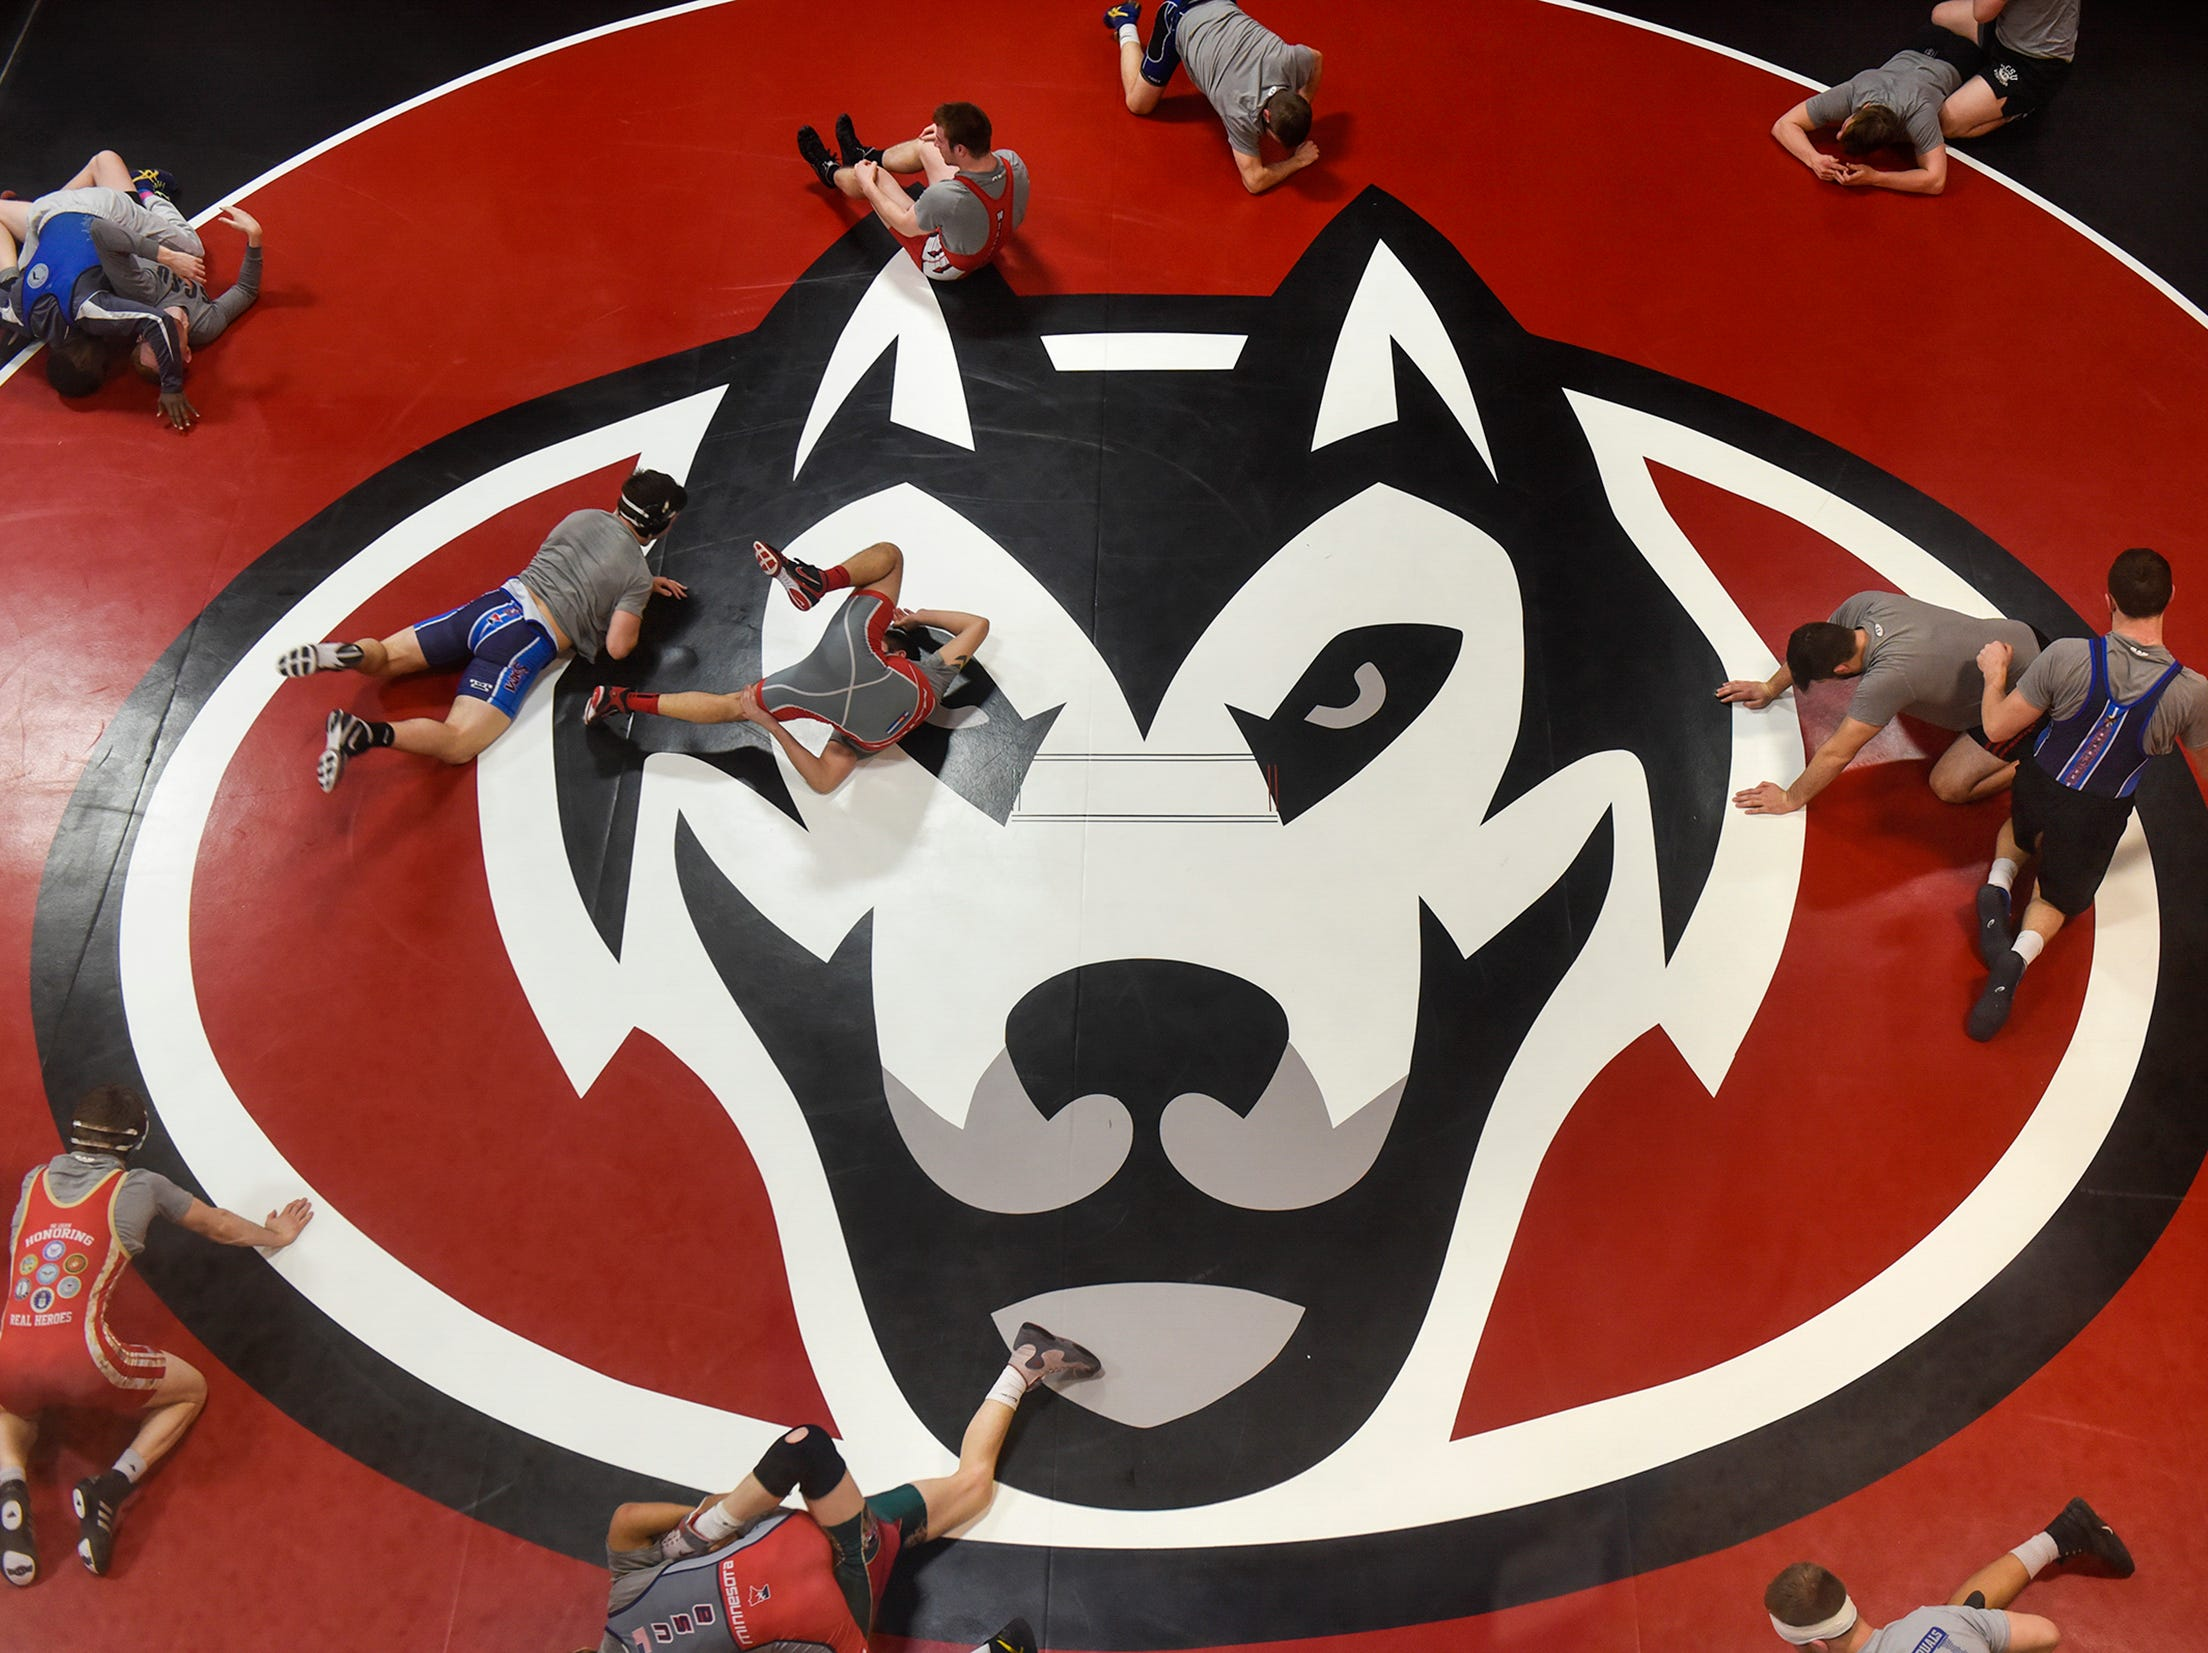 St. Cloud State wrestling team members practice on new mats in the team's practice room Saturday, Feb. 10, at Halenbeck Hall. The team raised more than $20,000 through Crowdsource funding  to help pay for the new mats.